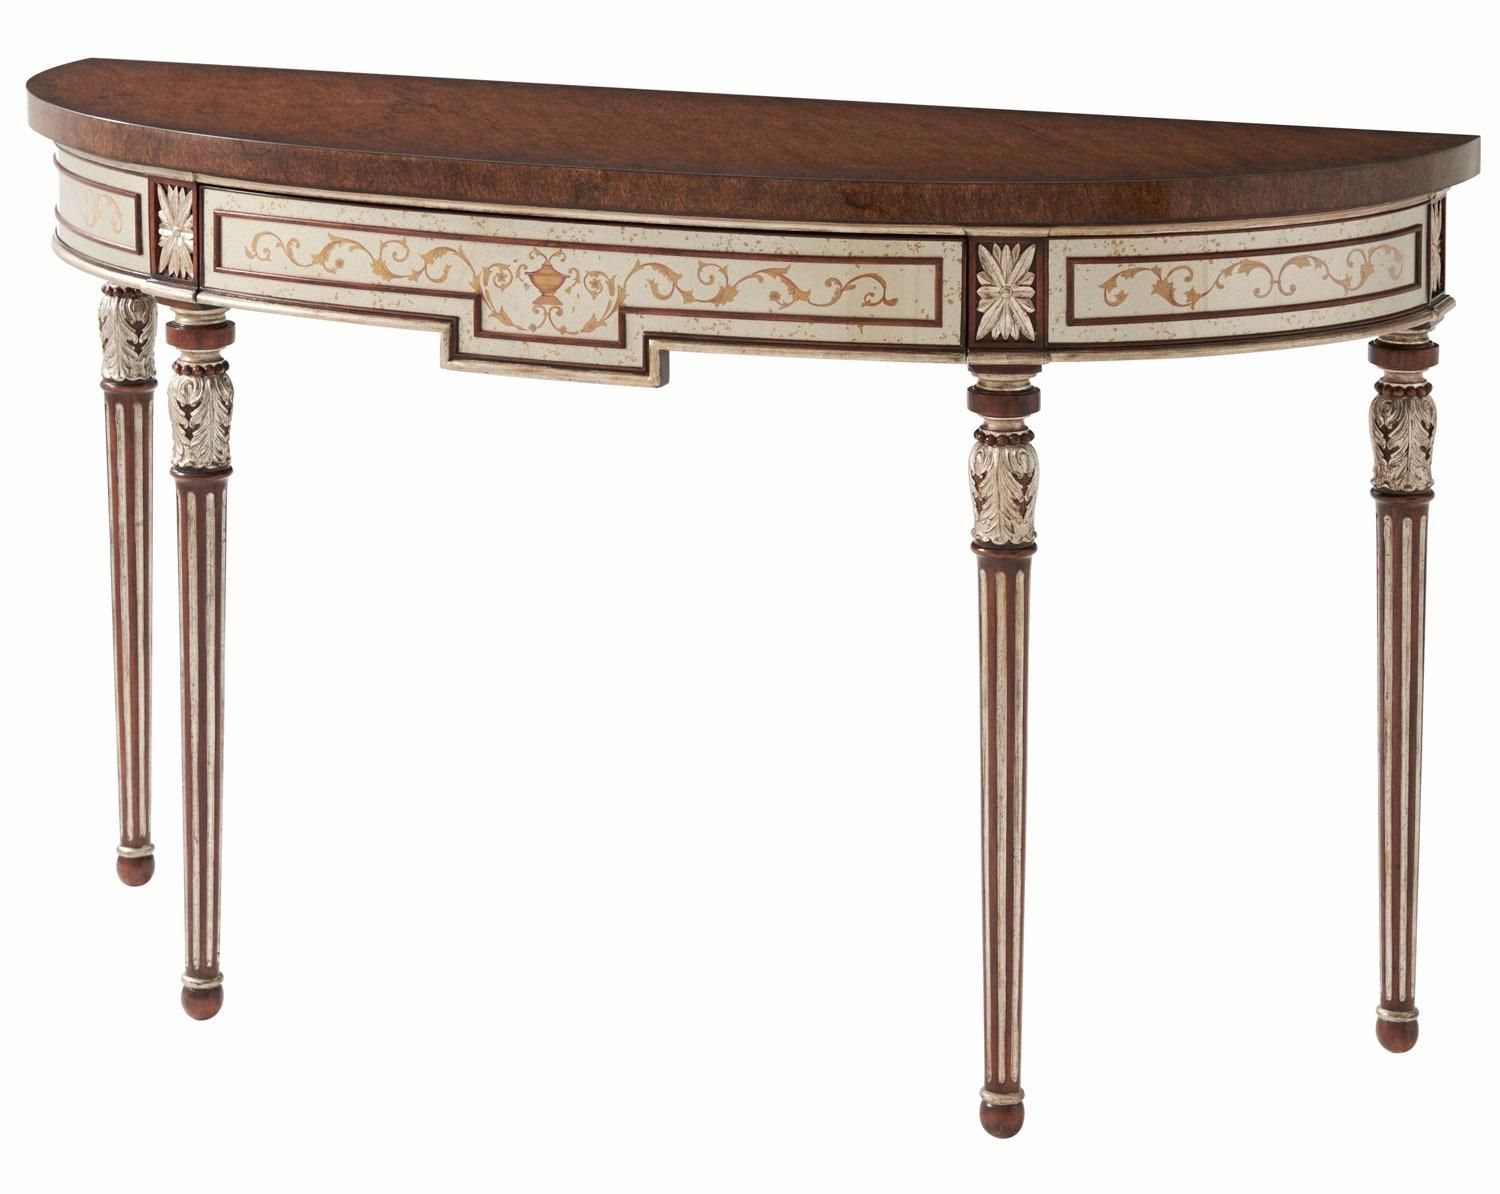 Louis XVI style console table Console Hall tables at Brights of